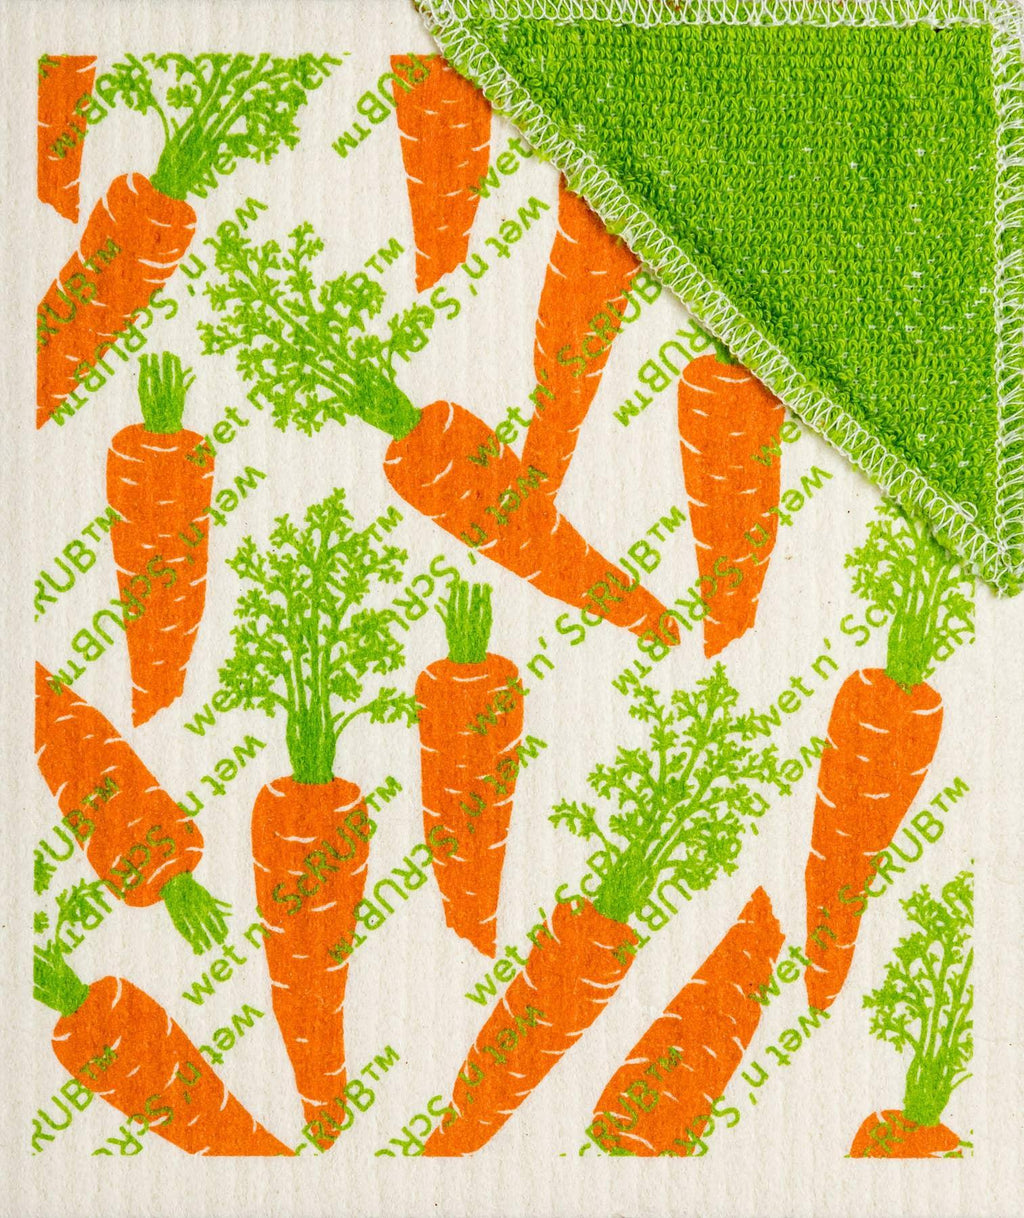 Wet-It! Wet'n Scrub Swedish Cloth - Carrots